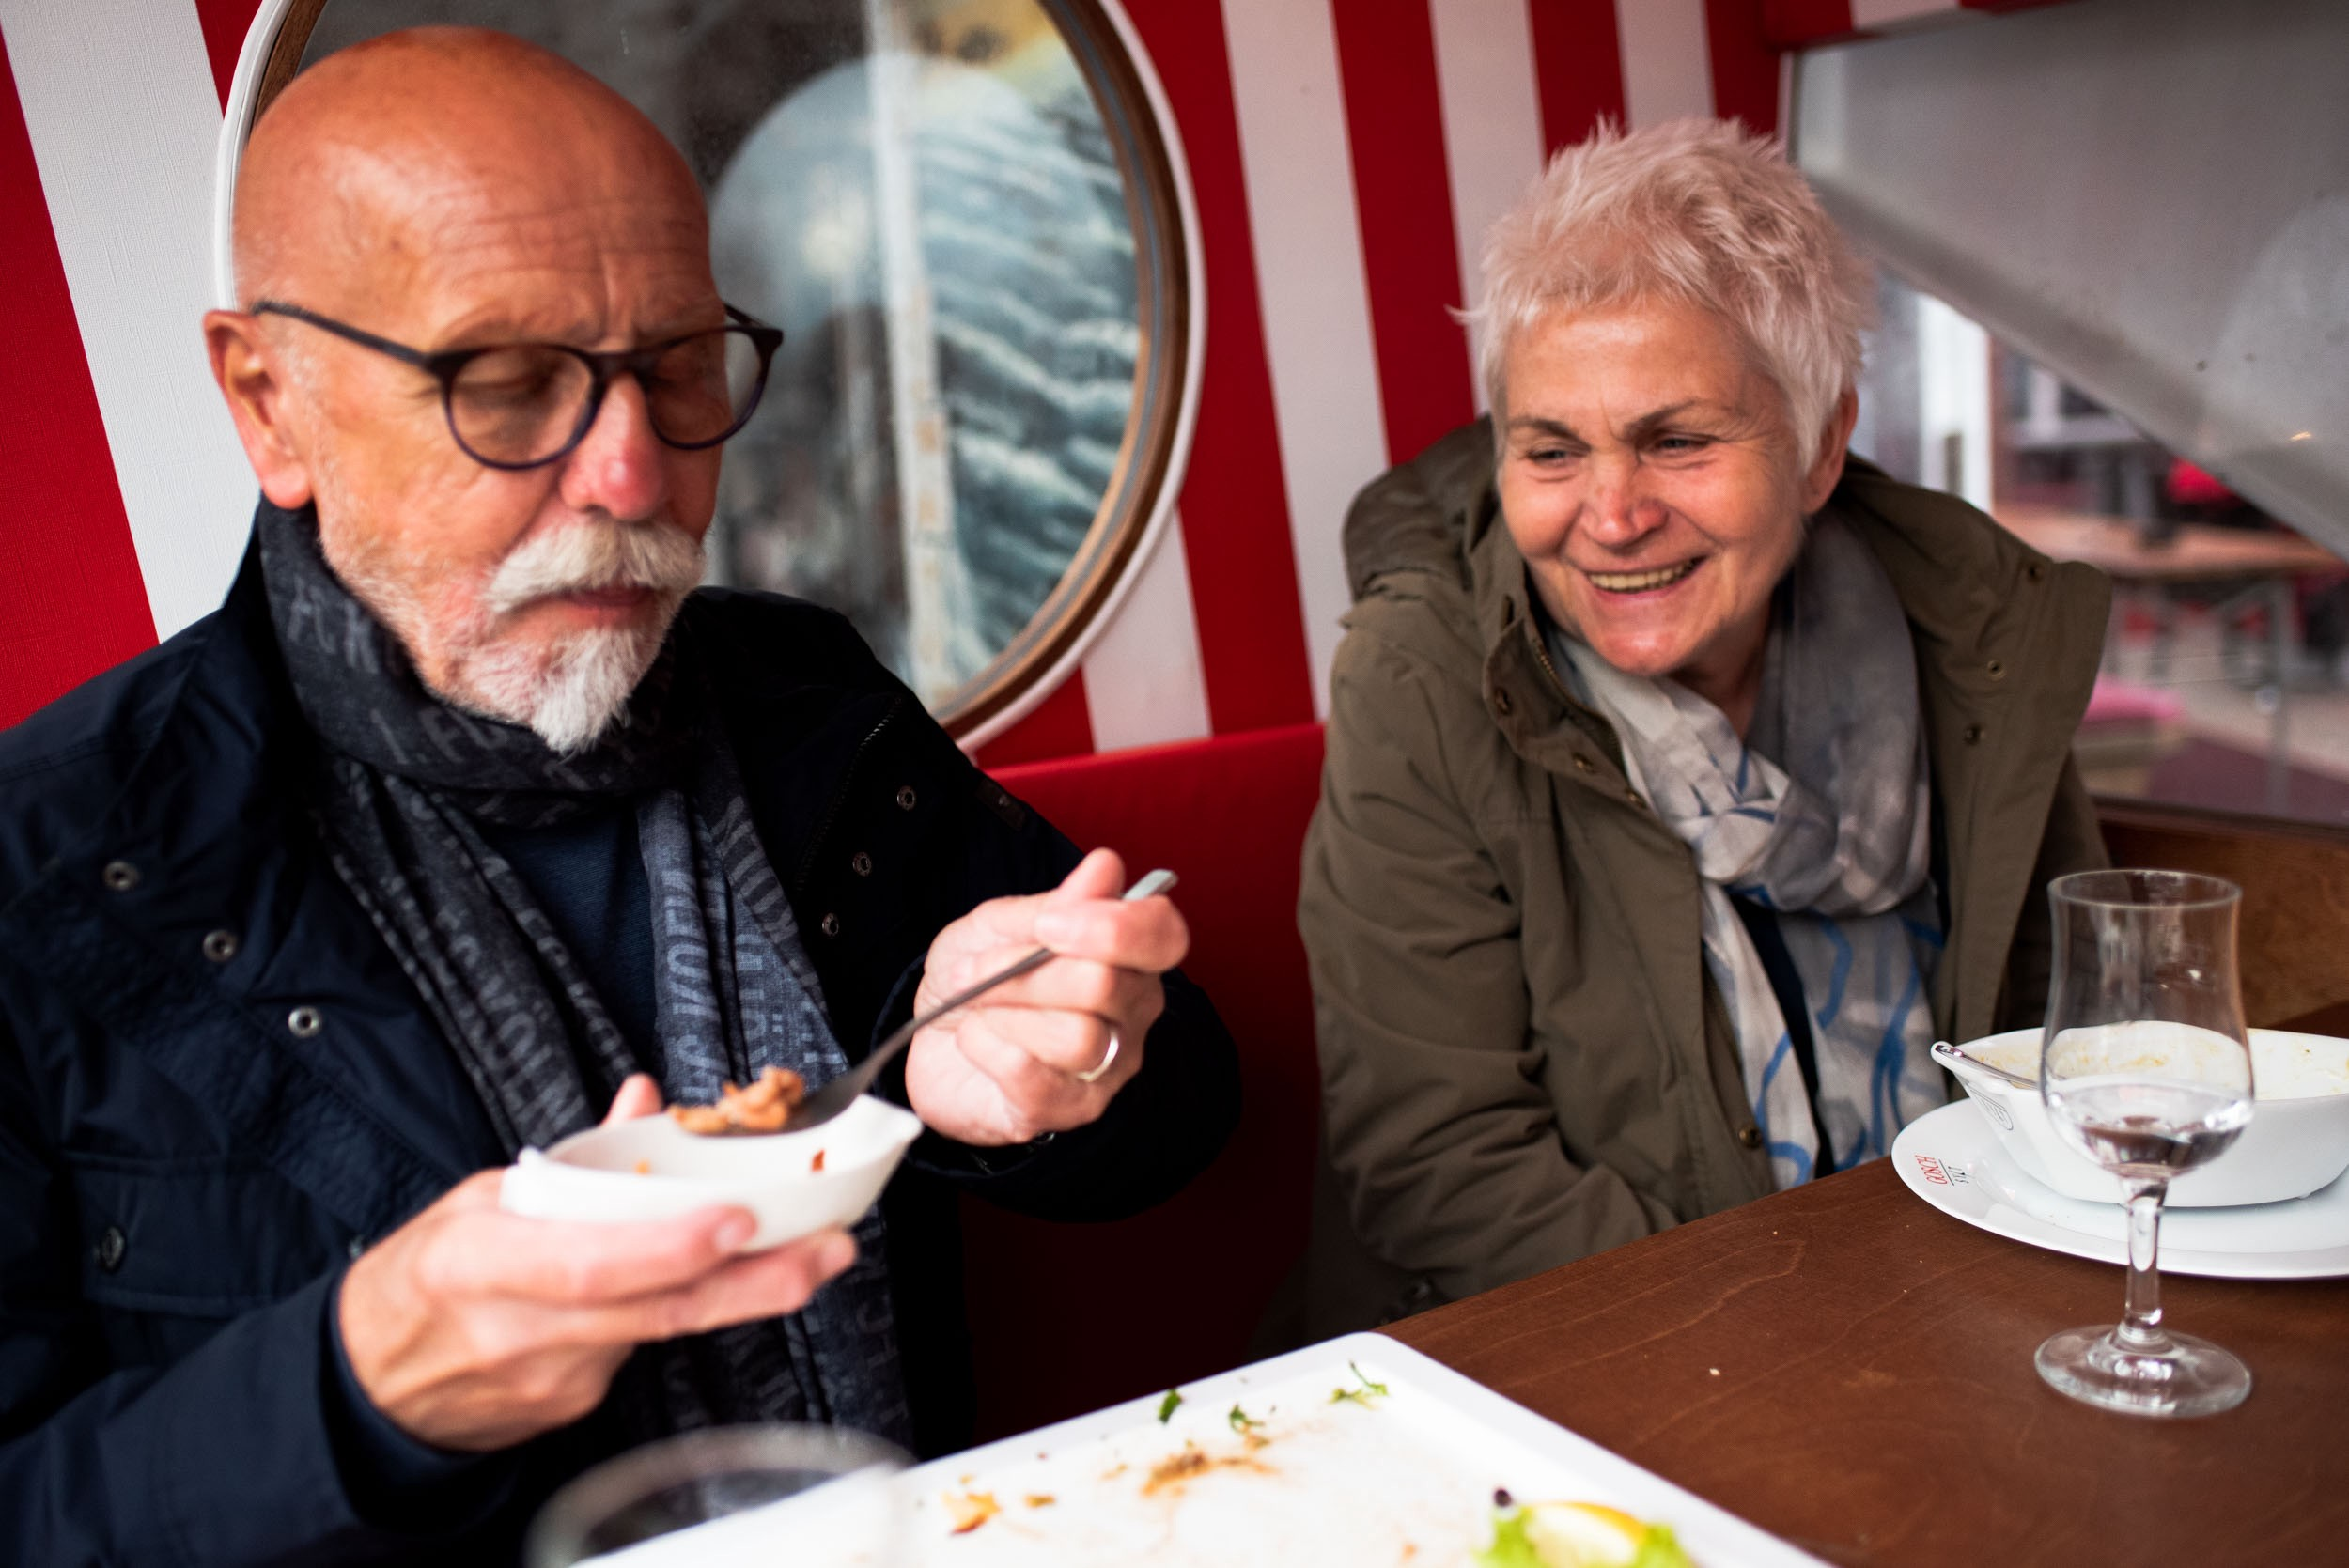 Mom and dad fight have dinner at Gosch and fight the winds in the outdoor dining area. List, Germany, May 24, 2019.